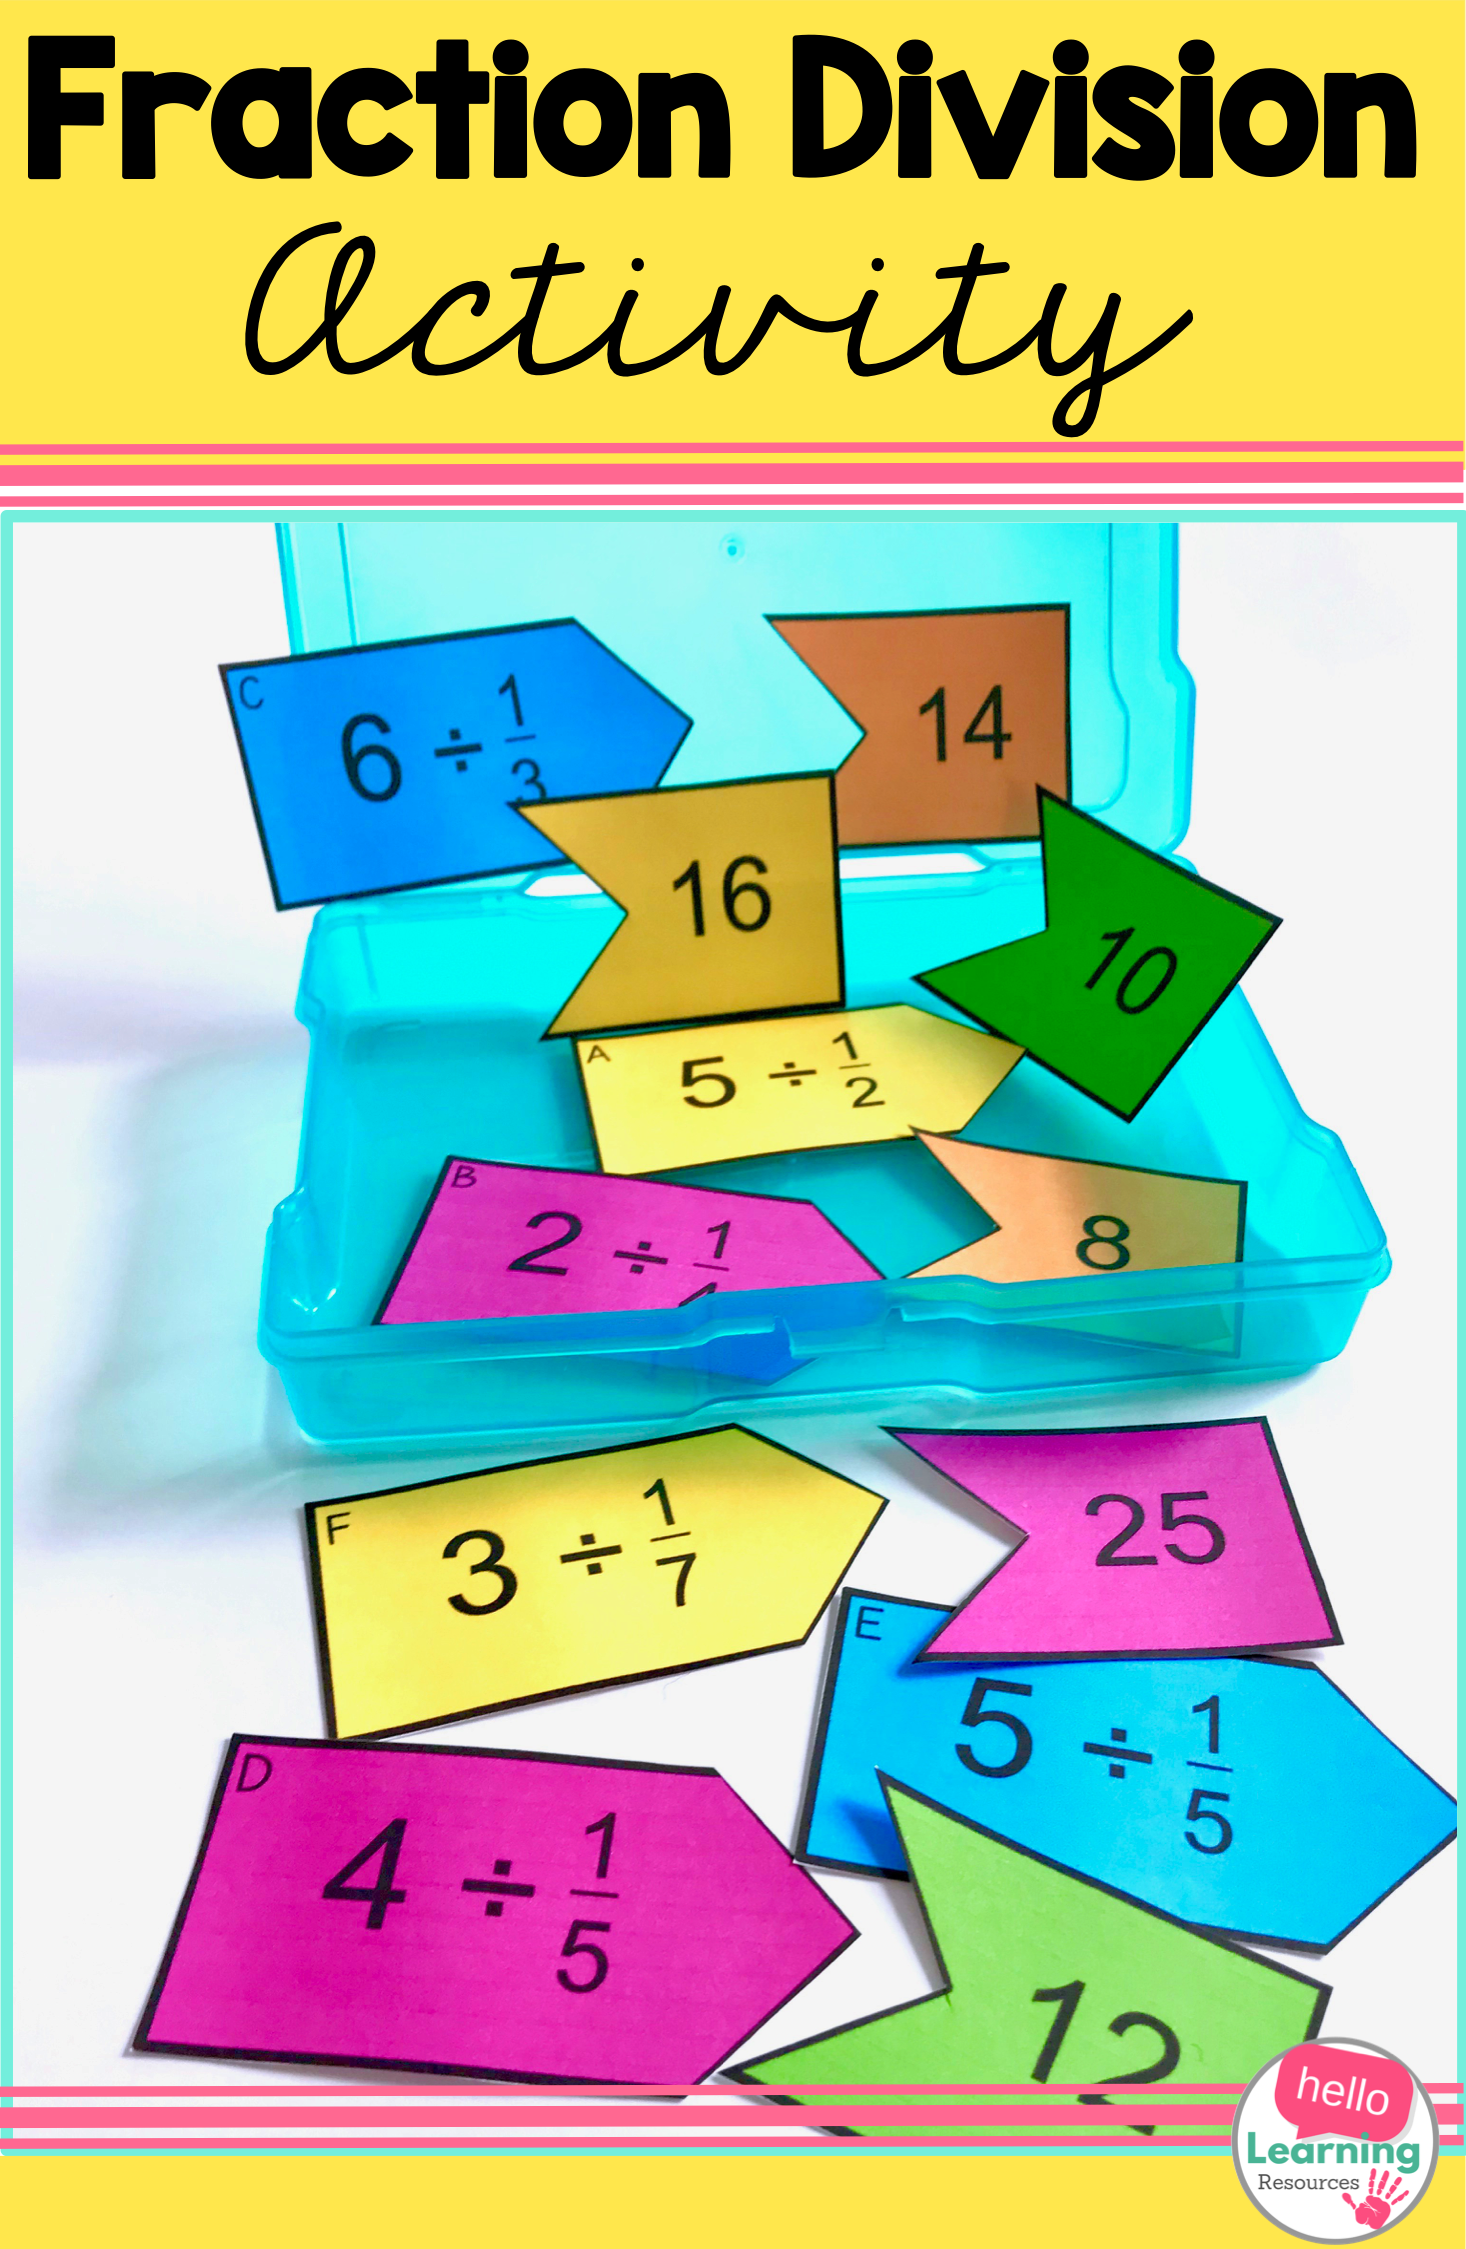 Fraction Division Activity